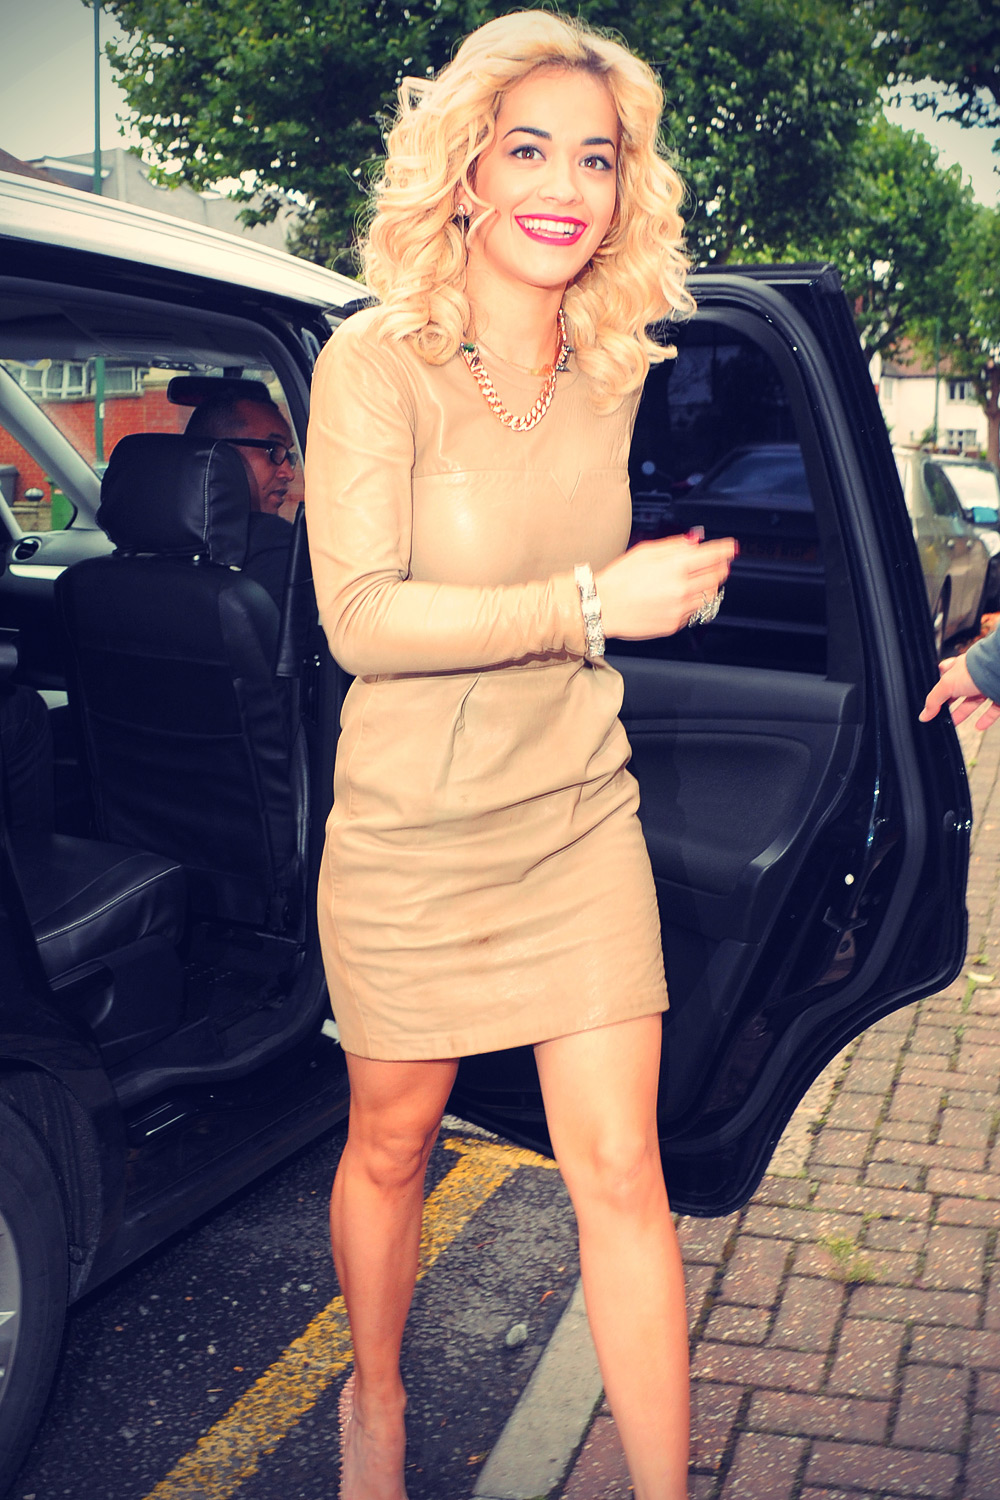 Rita Ora arrives for a photoshoot in north London